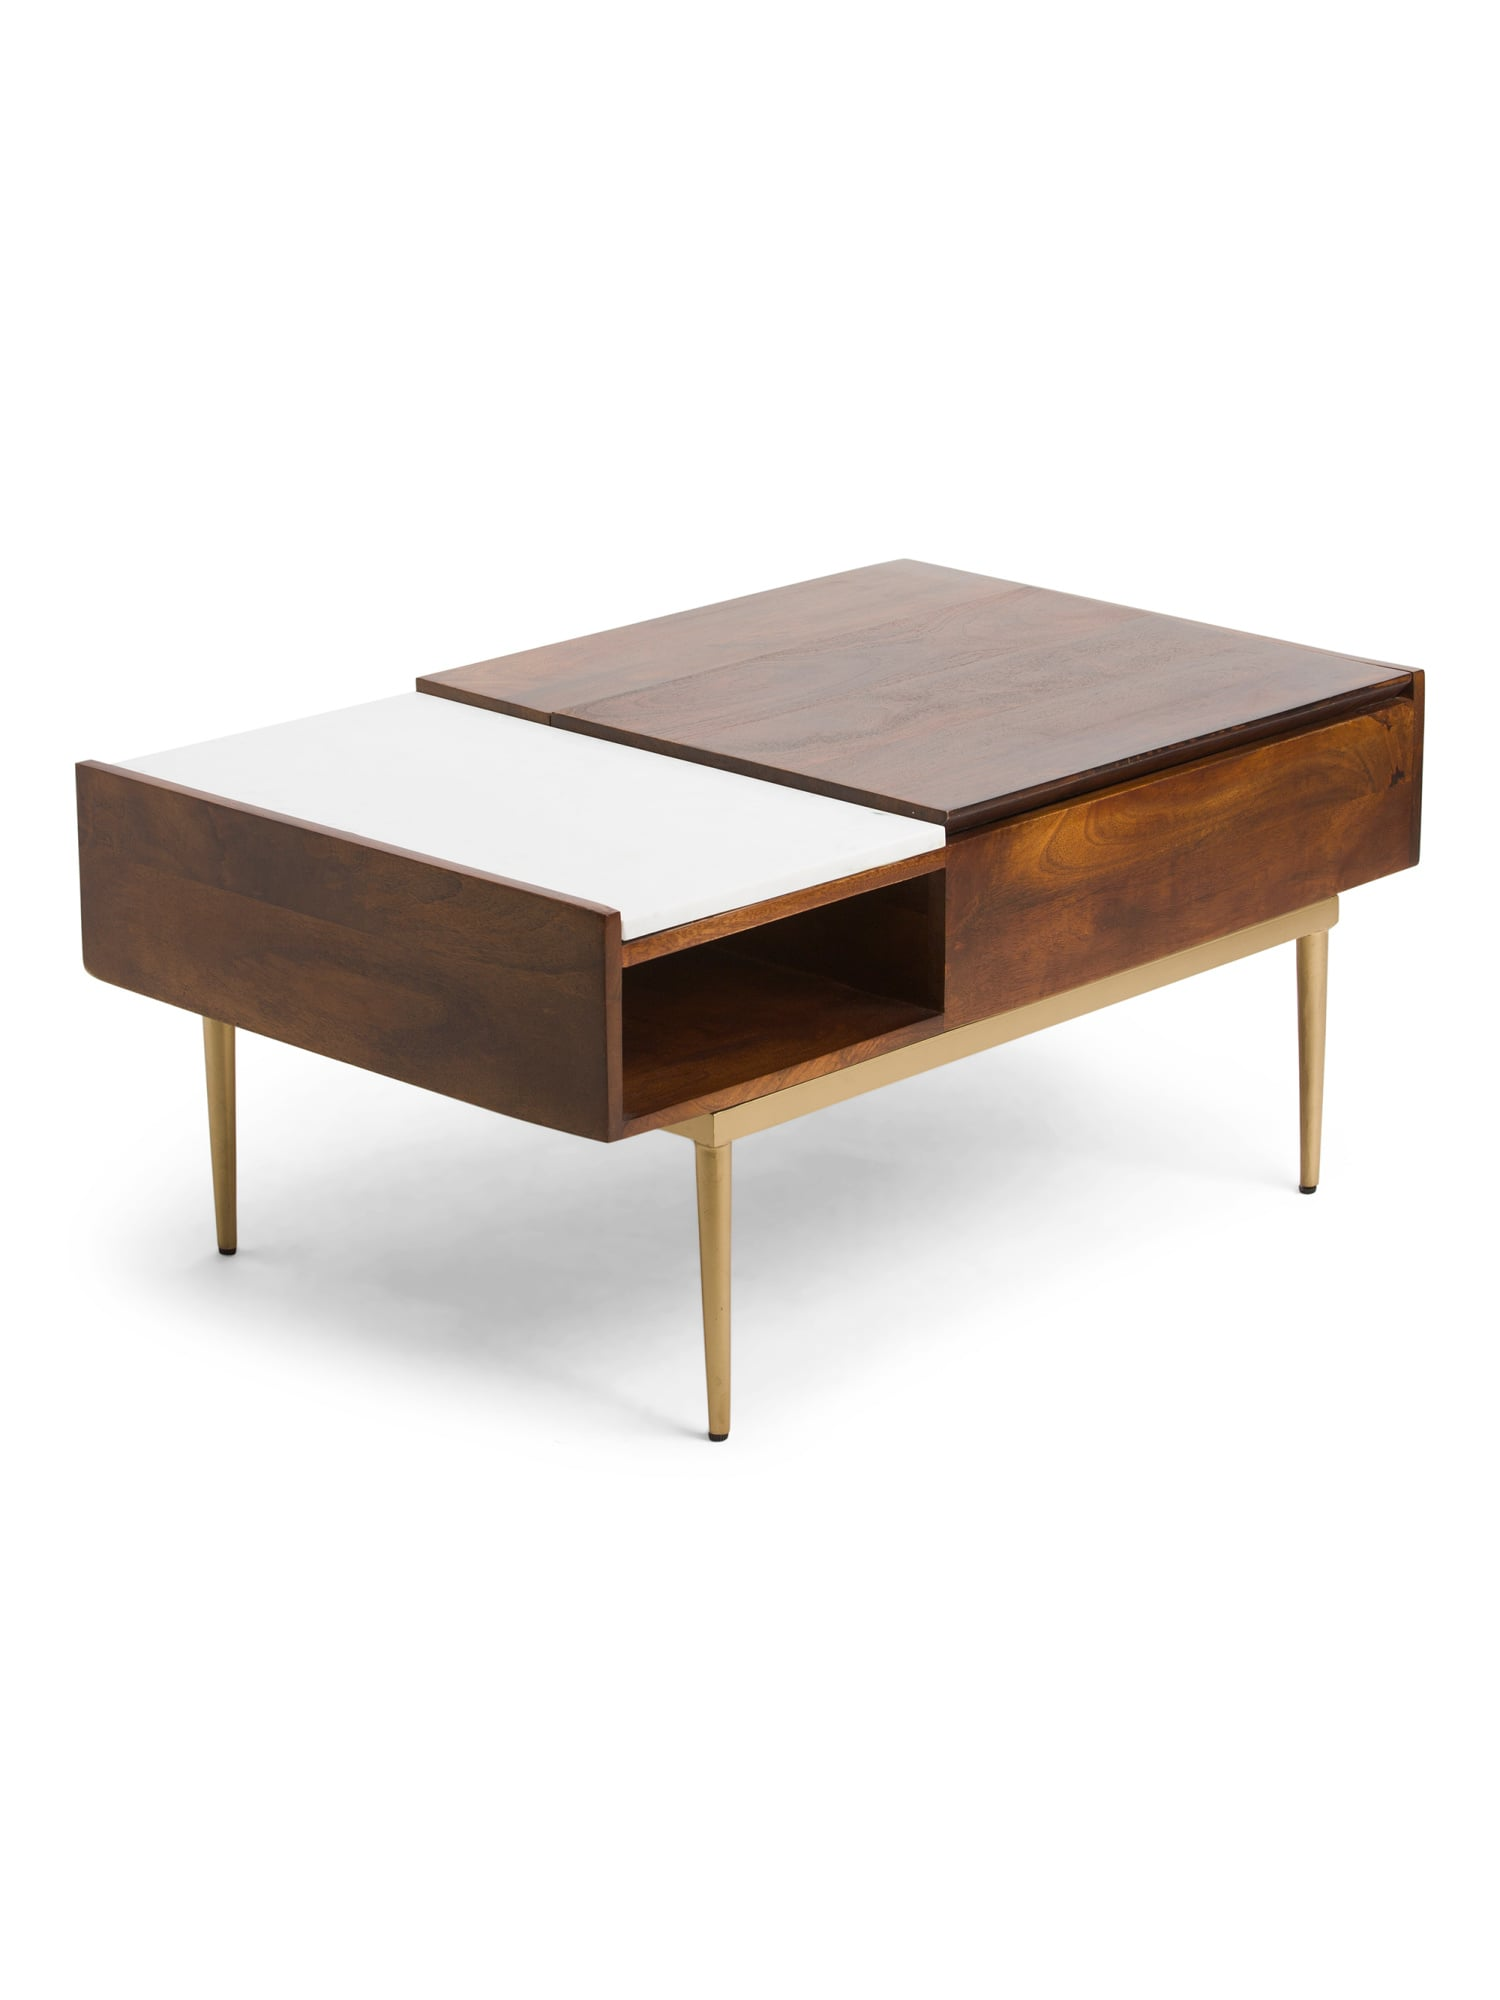 Best Small Space Furniture From Tj Maxx Popsugar Home Only a 6 cup tray will fit in and nothing more. best small space furniture from tj maxx